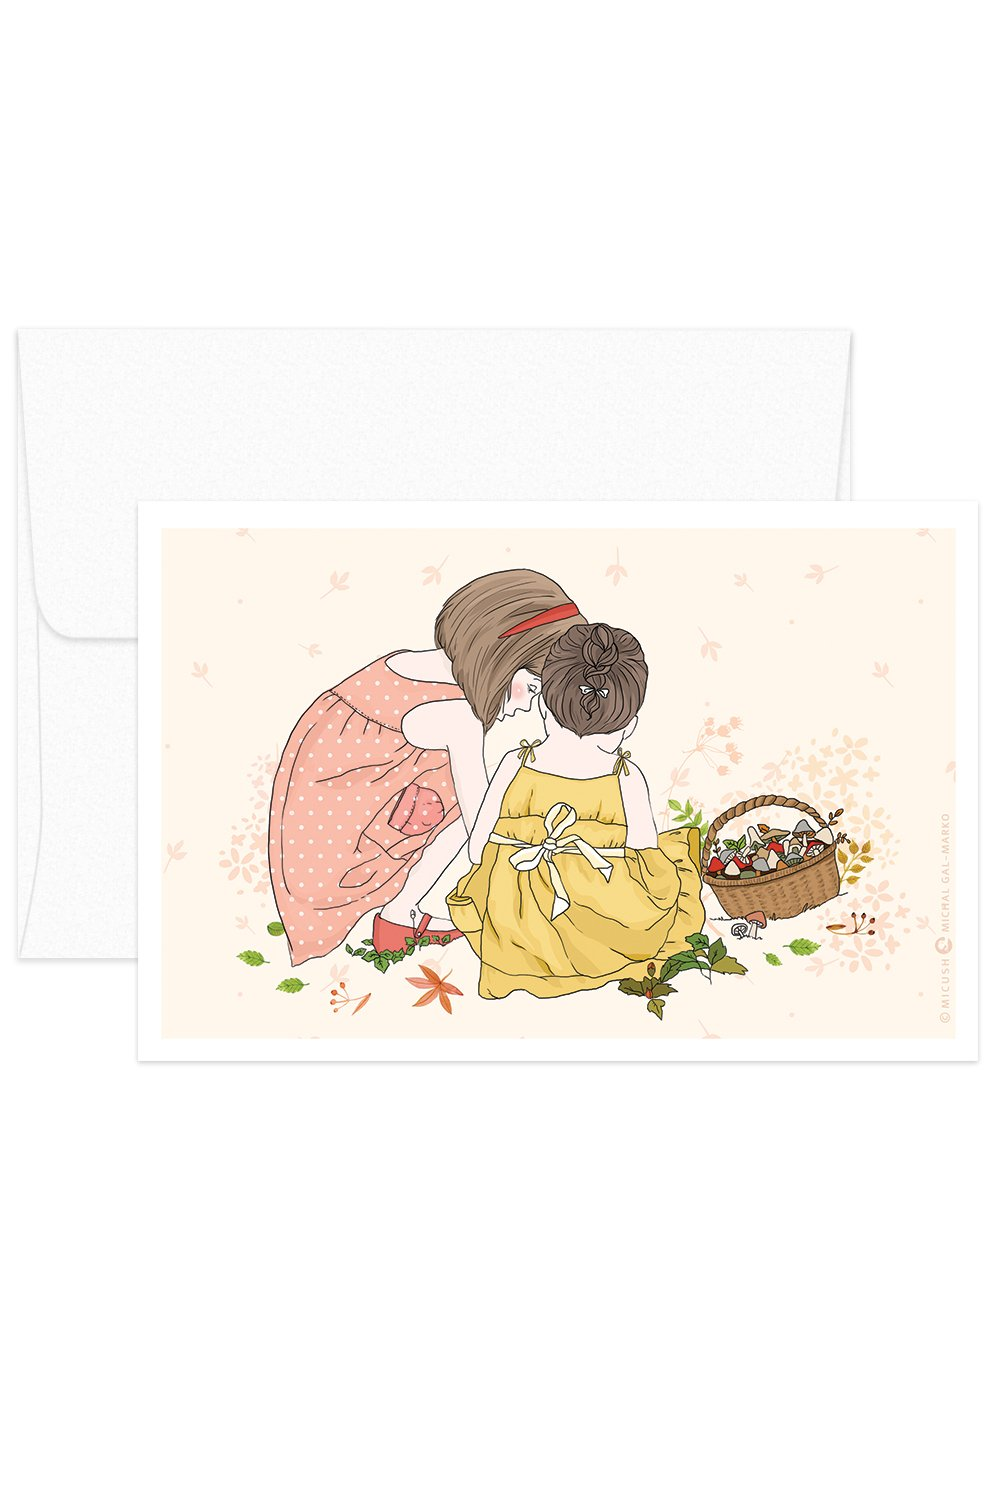 Card - Childhood Moments - Girls Picking Mushrooms